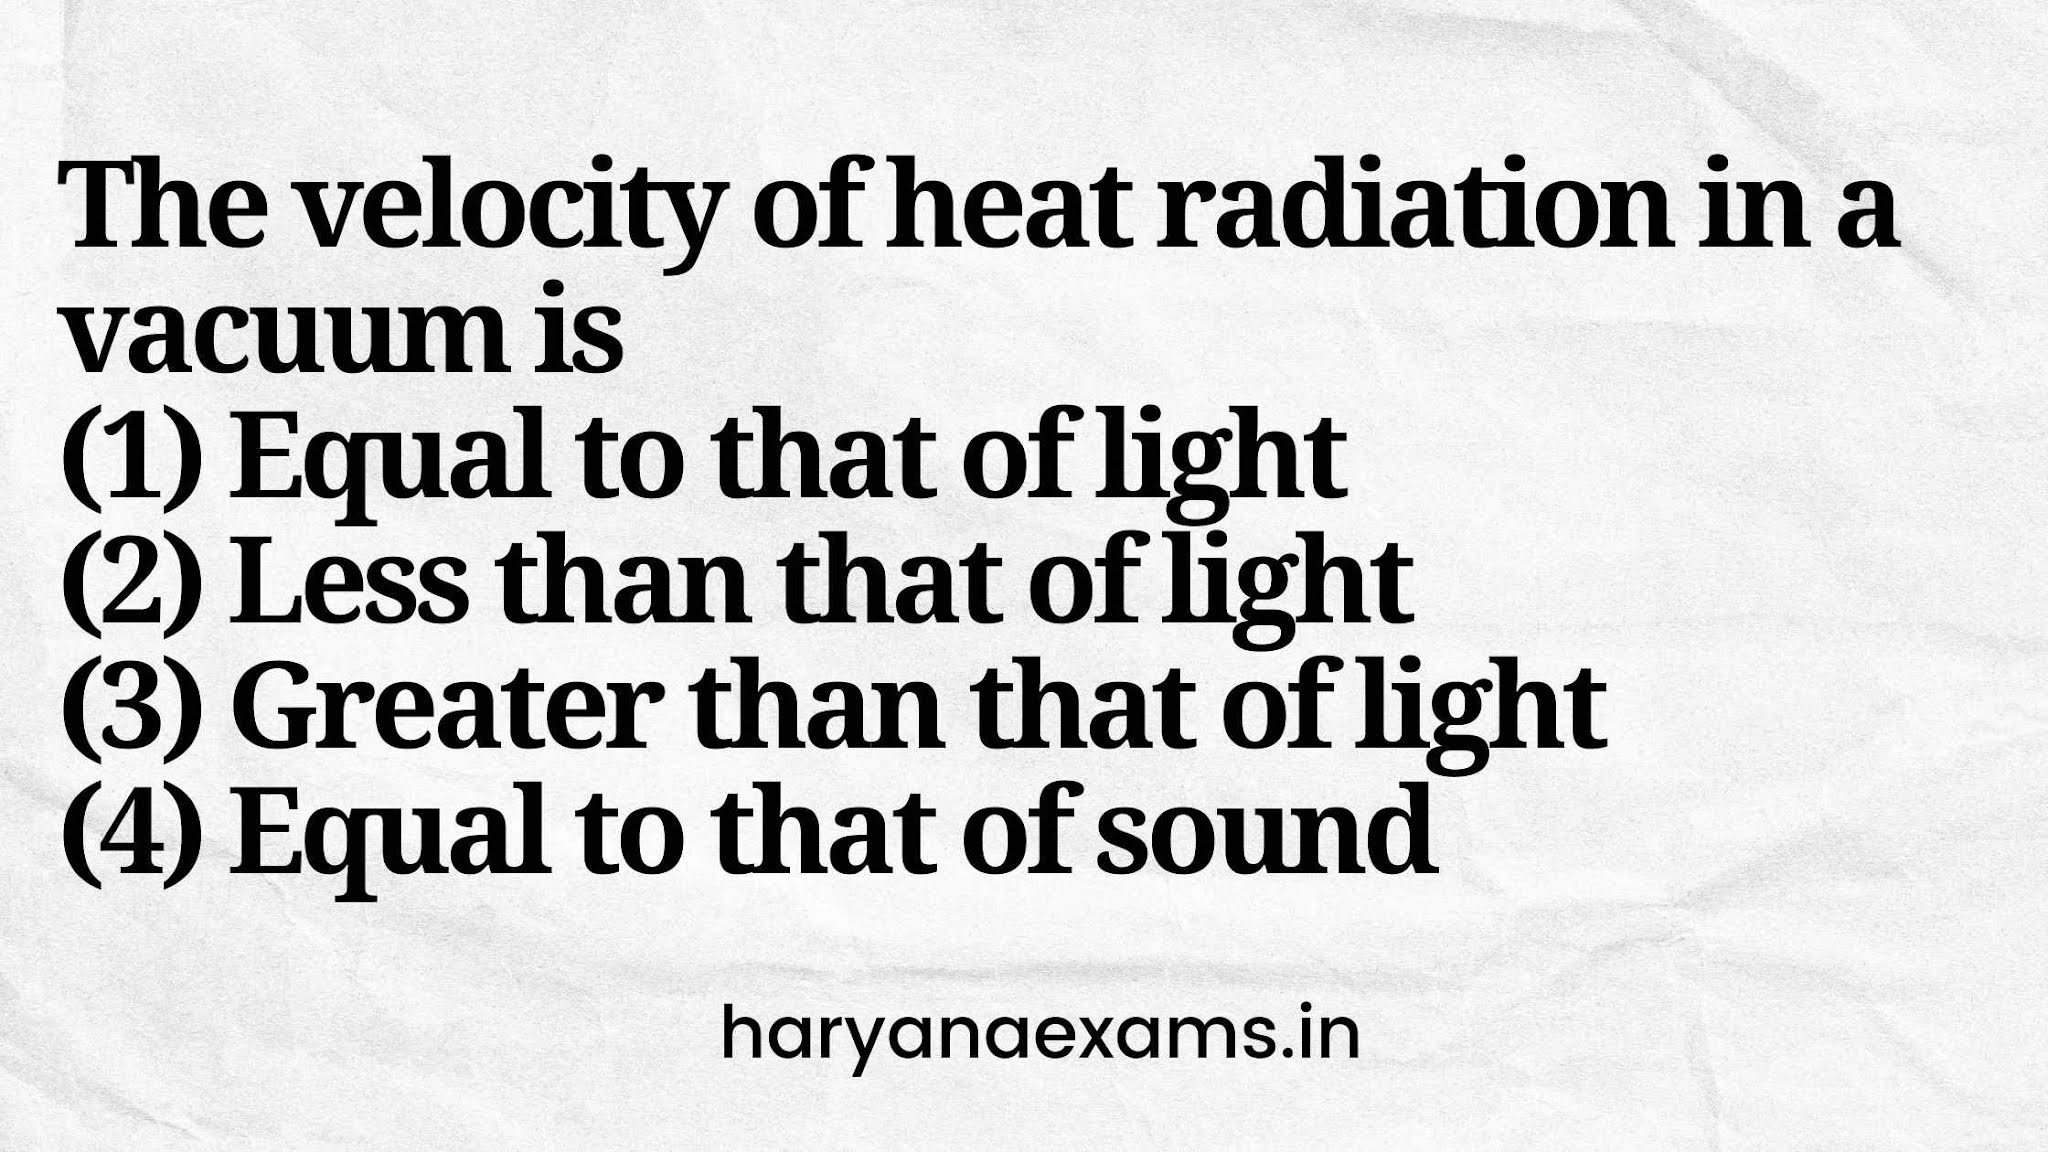 The velocity of heat radiation in a vacuum is   (1) Equal to that of light   (2) Less than that of light   (3) Greater than that of light   (4) Equal to that of sound